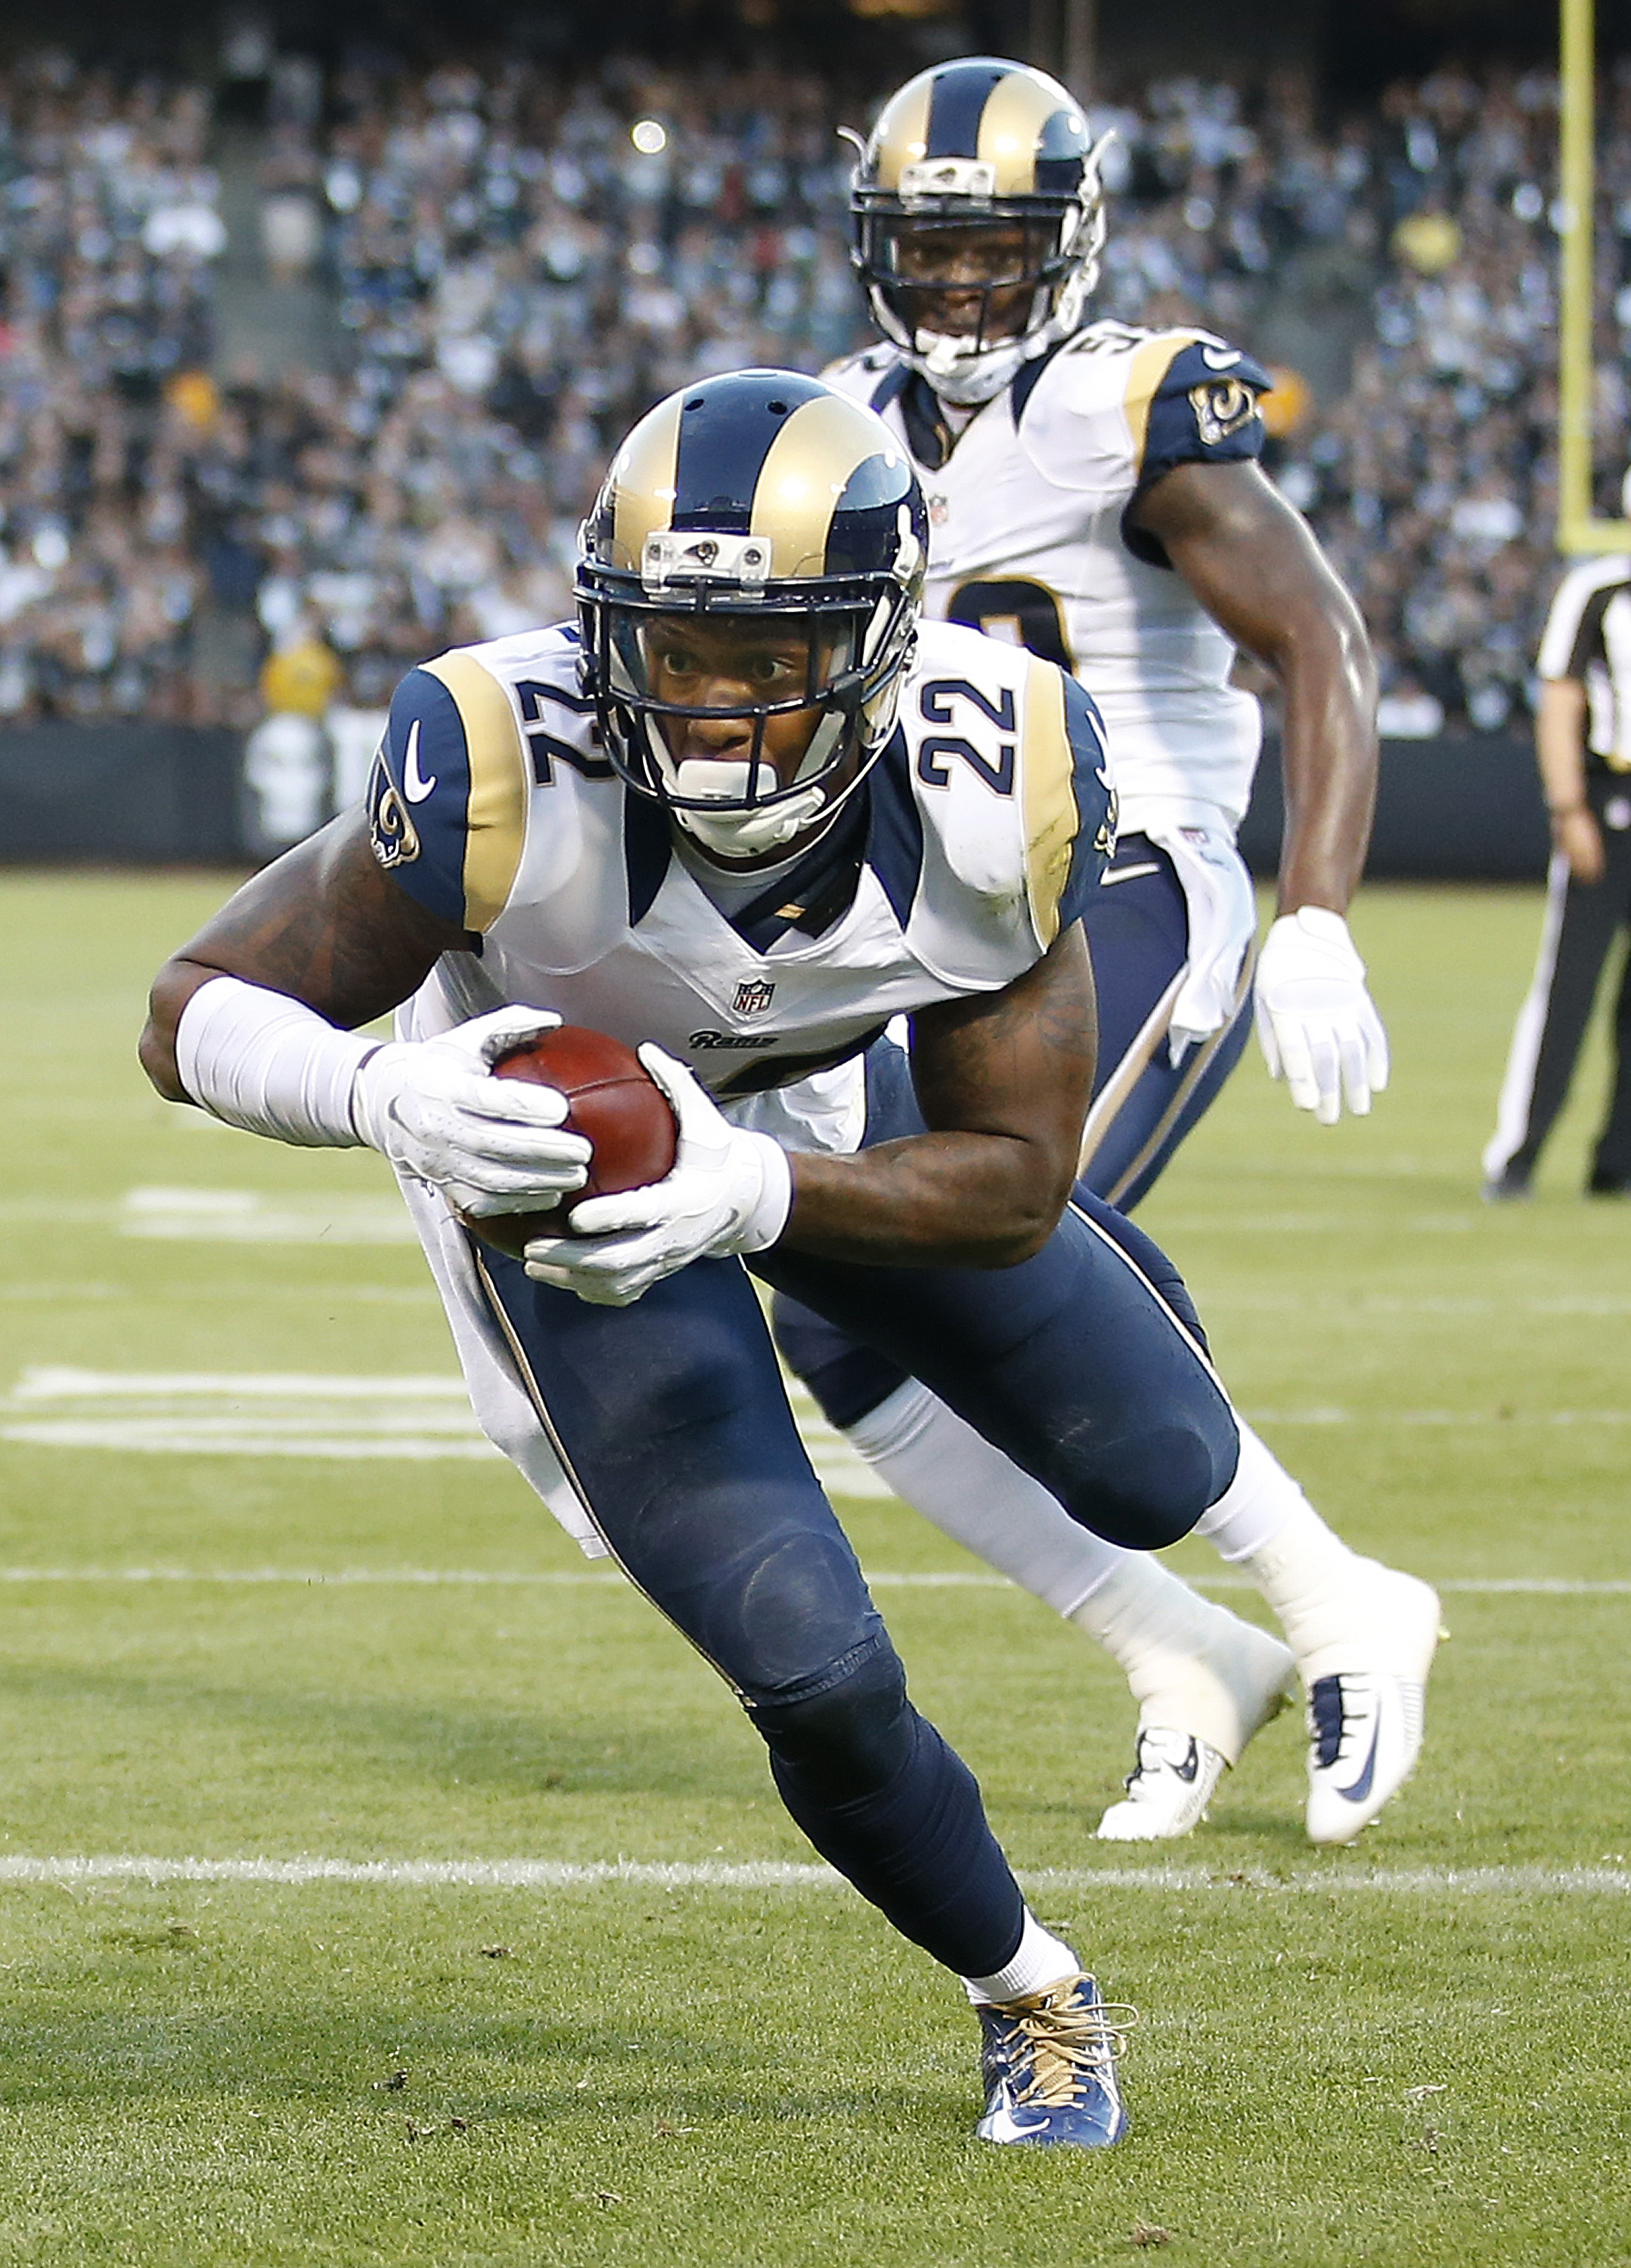 St. Louis Rams cornerback Trumaine Johnson (22) intercepts a pass against the Oakland Raiders during the first half of an NFL preseason football game in Oakland, Calif., Friday, Aug. 14, 2015. (AP Photo/Tony Avelar)